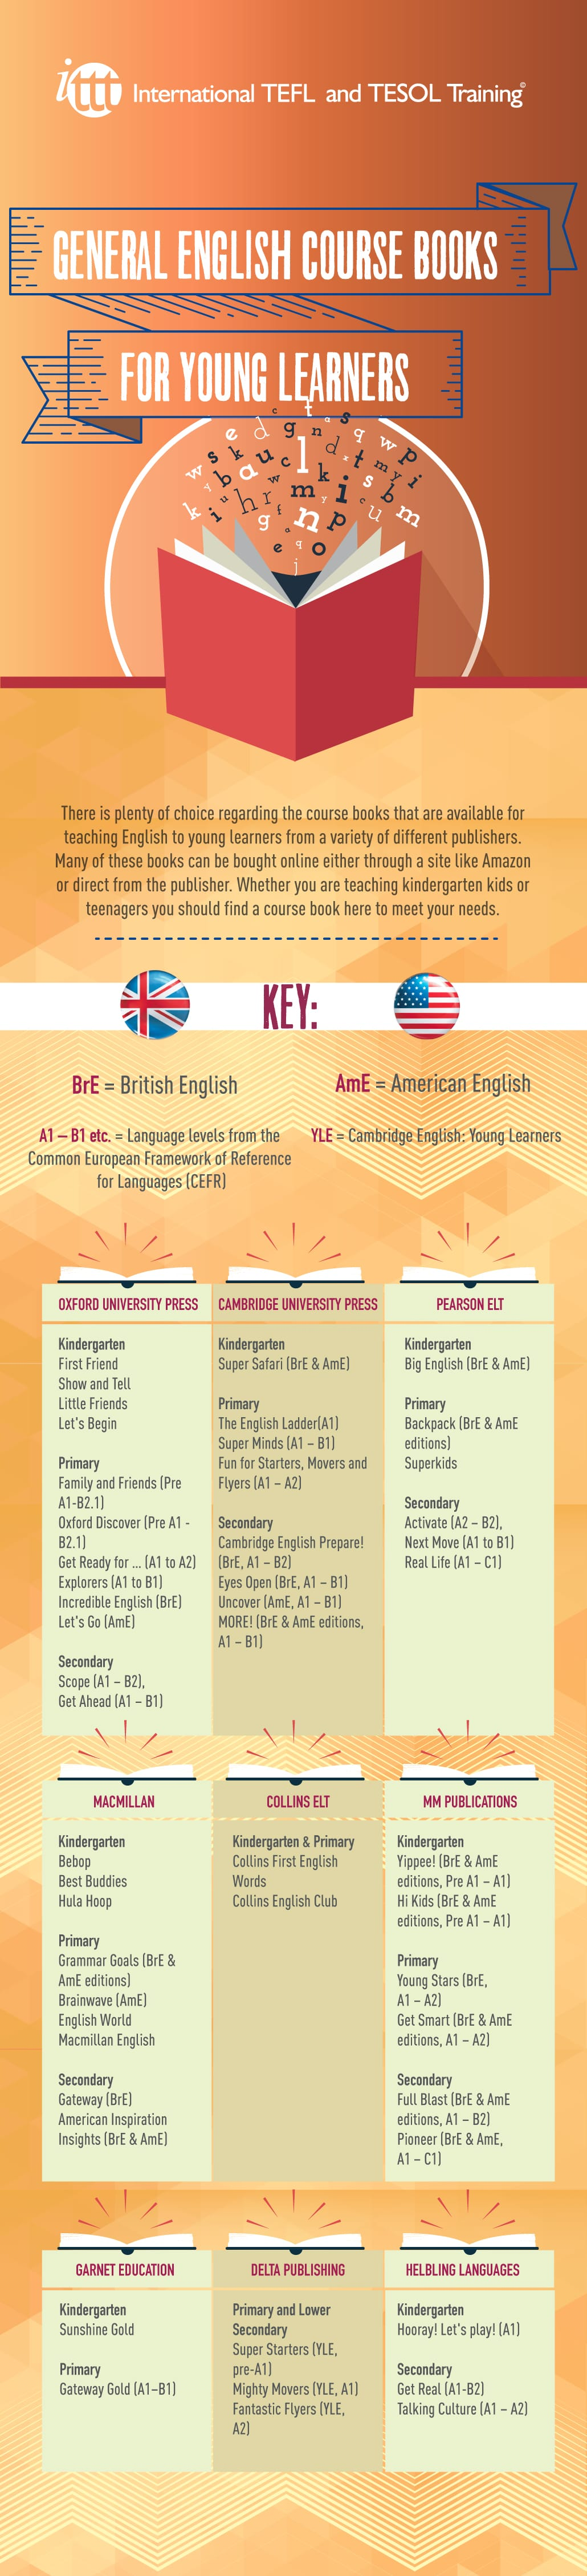 Infographic General English Course Books for Young Learners